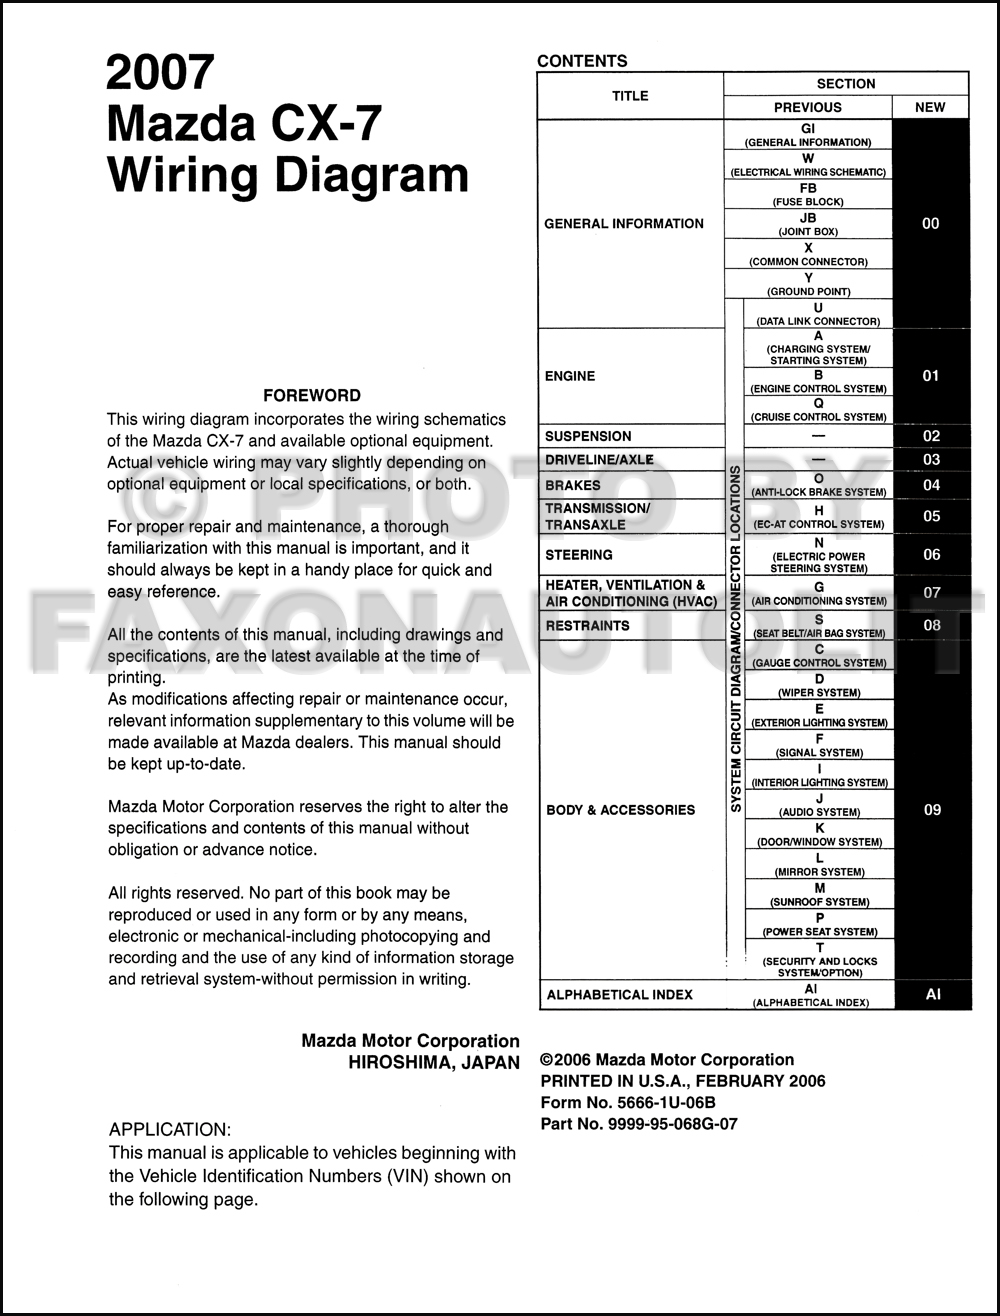 Mazda 6 Wiring Diagram Pdf List Of Schematic Circuit 2008 2007 Layout Diagrams U2022 Rh Laurafinlay Co Uk